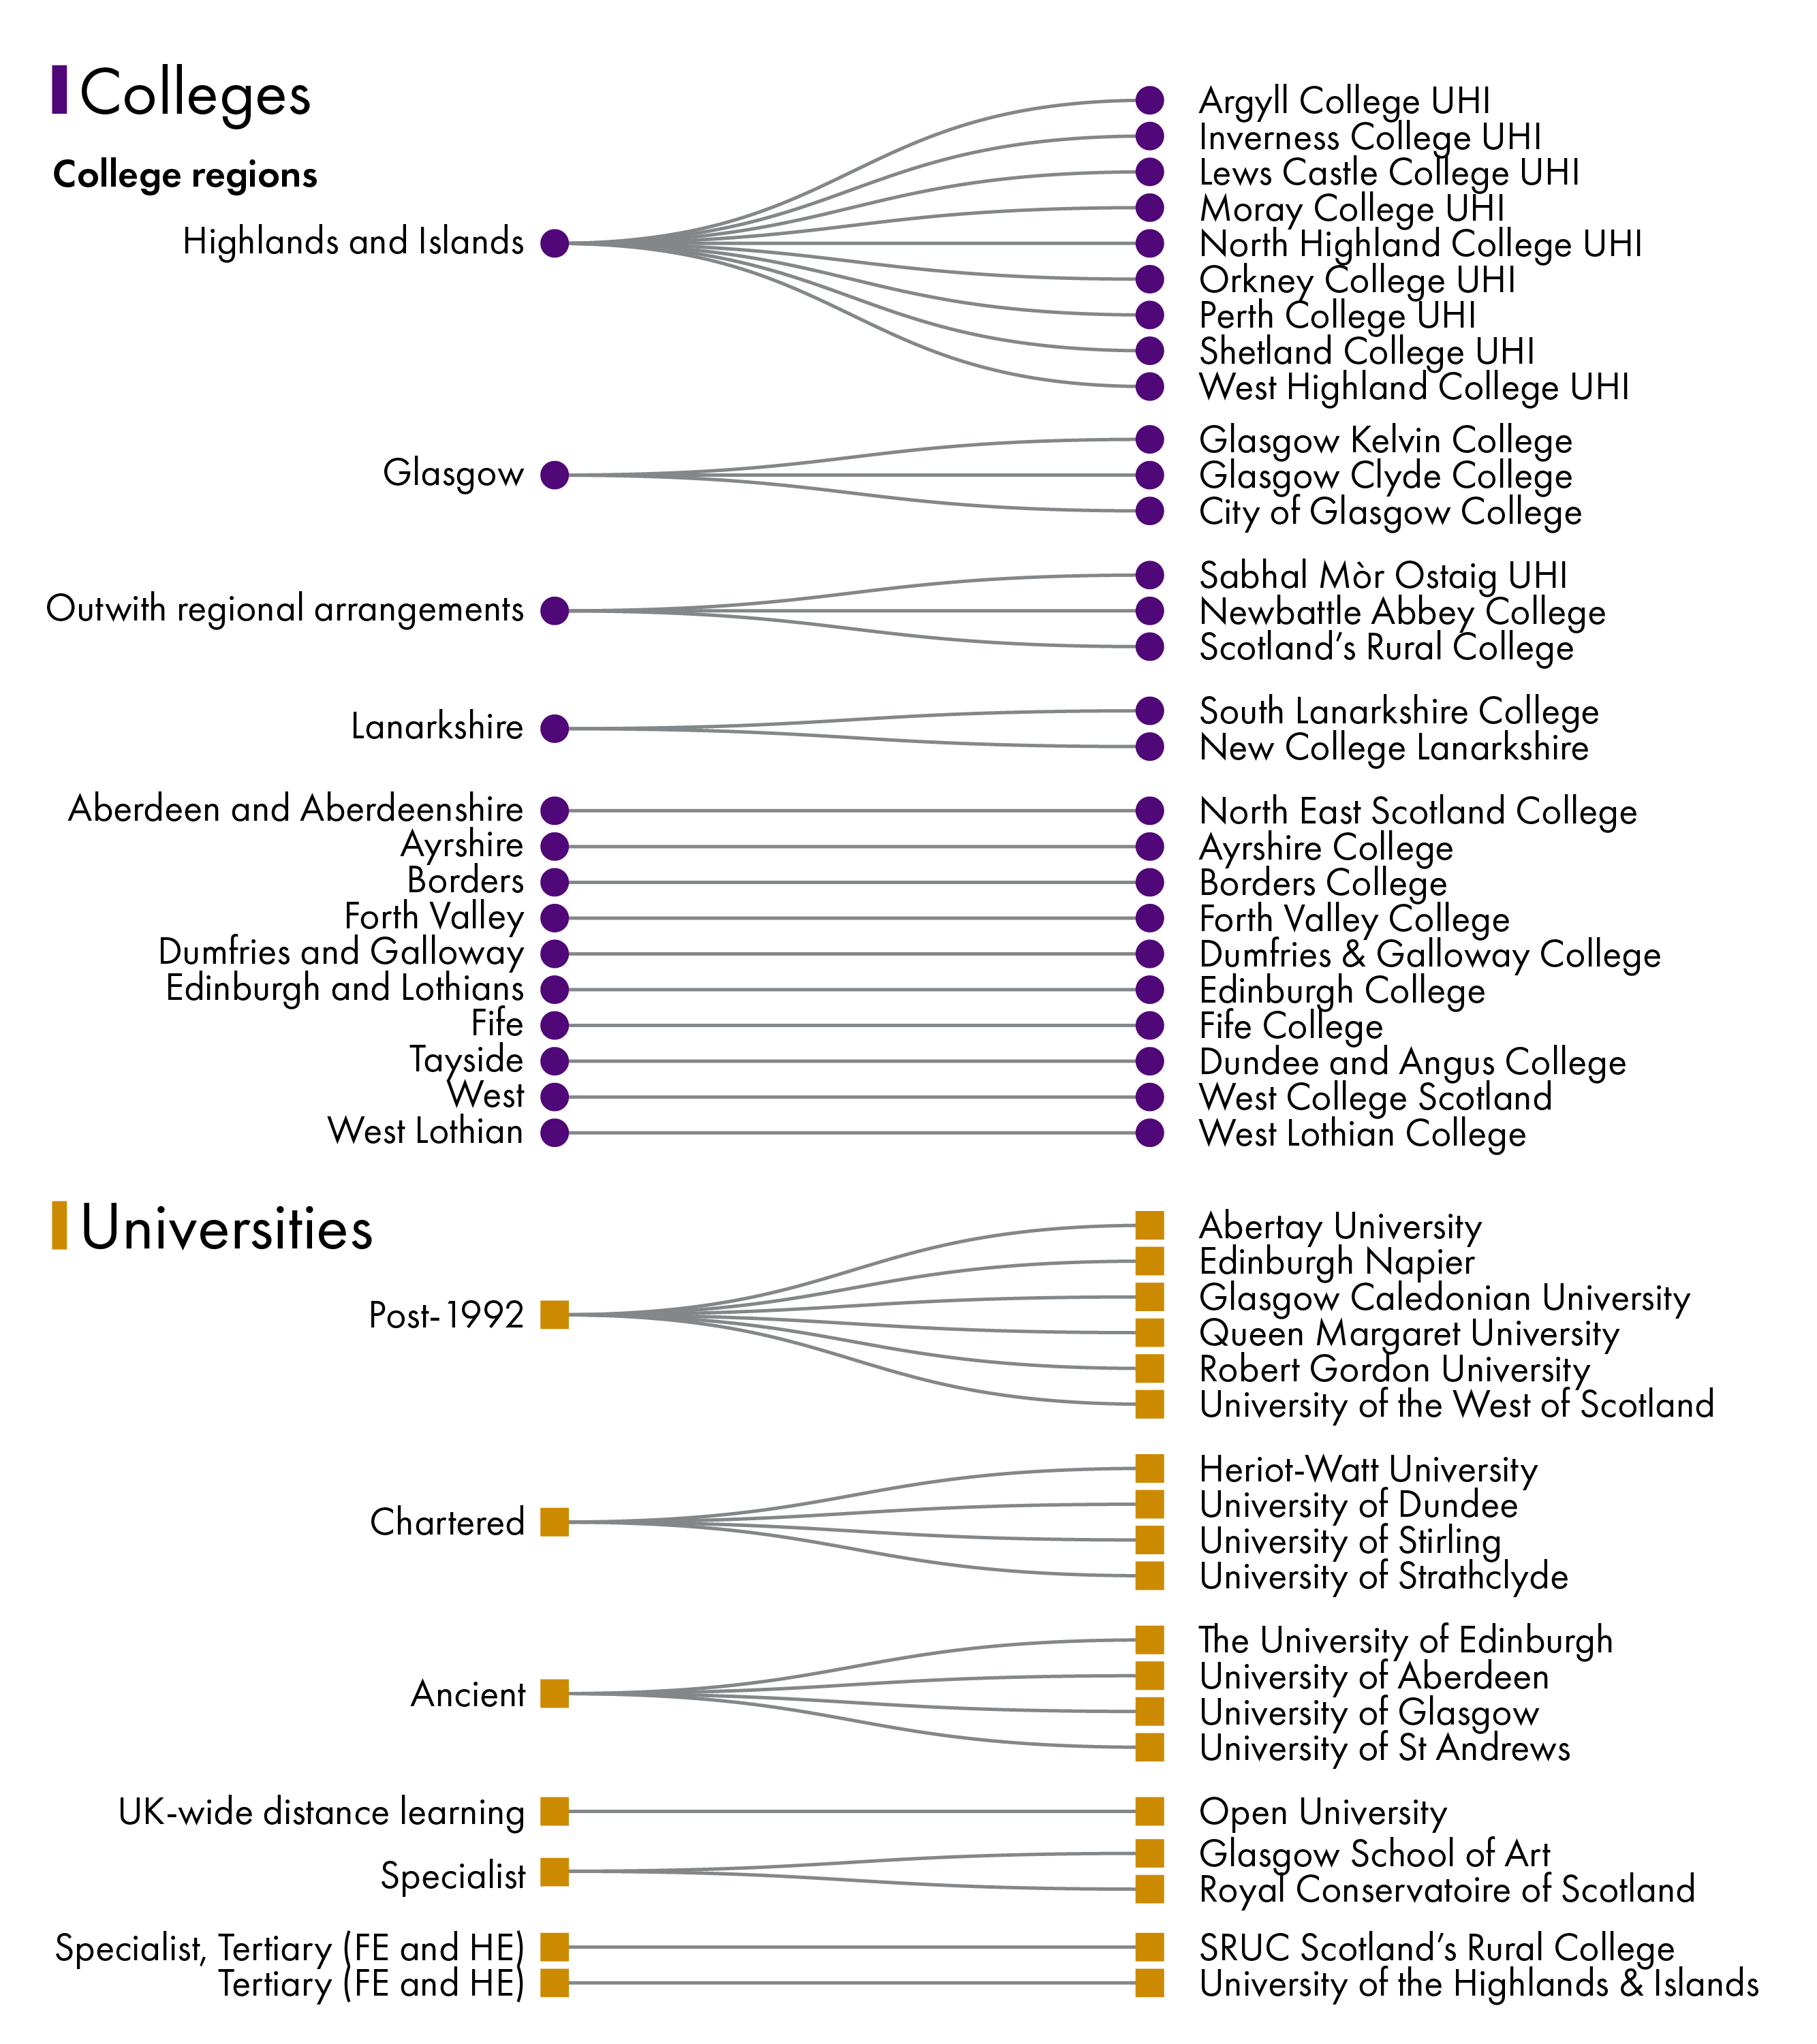 Colleges are organised into 13 regions and there are 19 universities in Scotland.